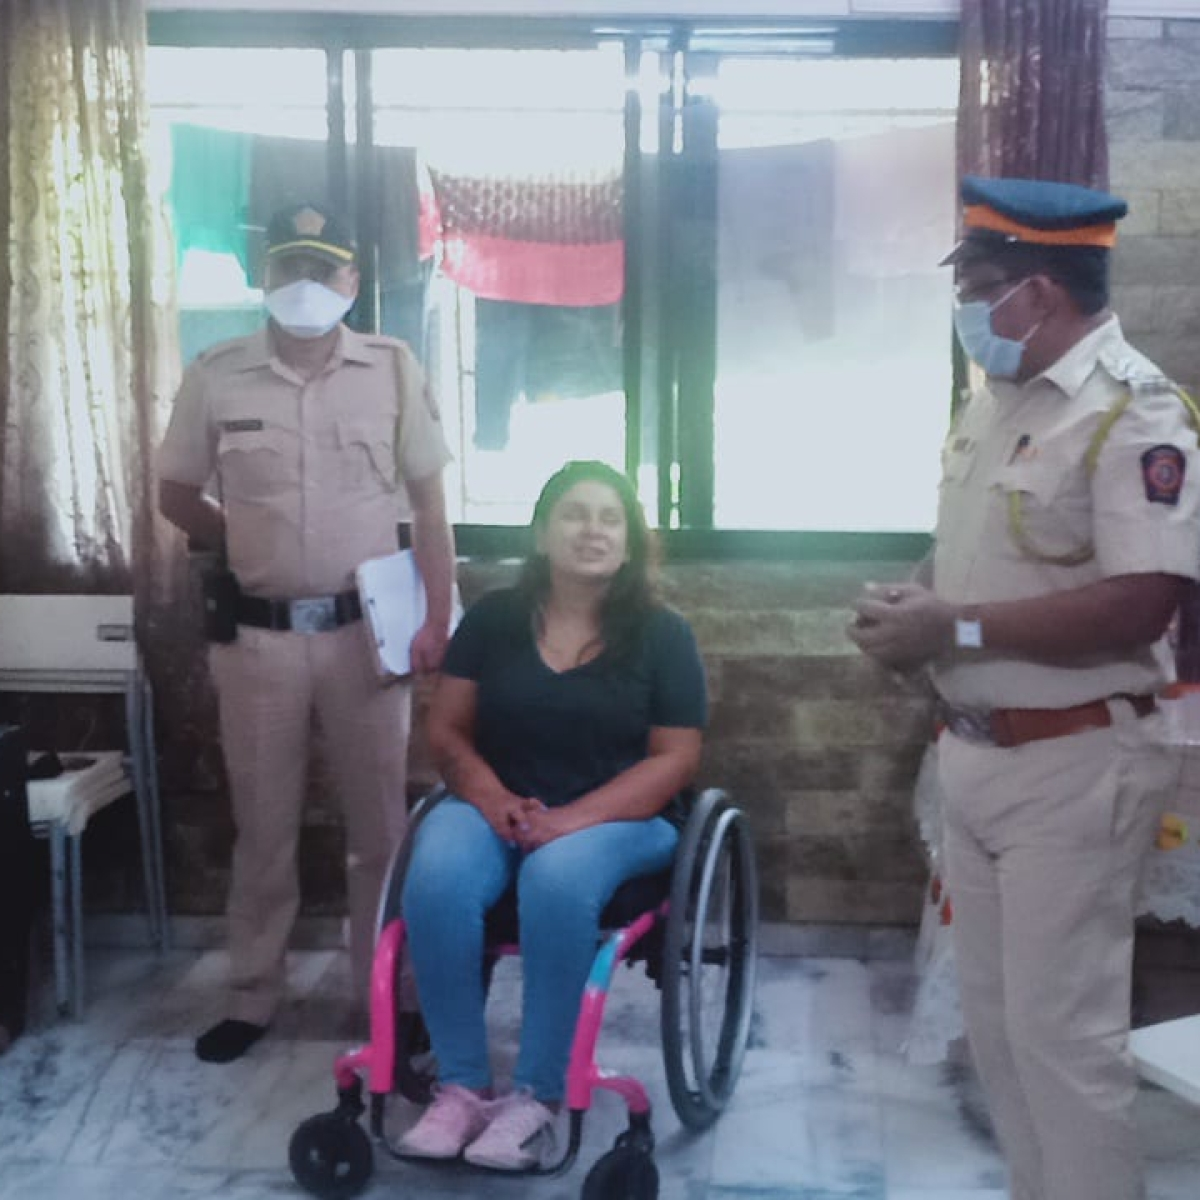 Coronavirus in Mumbai: How Mumbai cops helped a disabled woman during lockdown